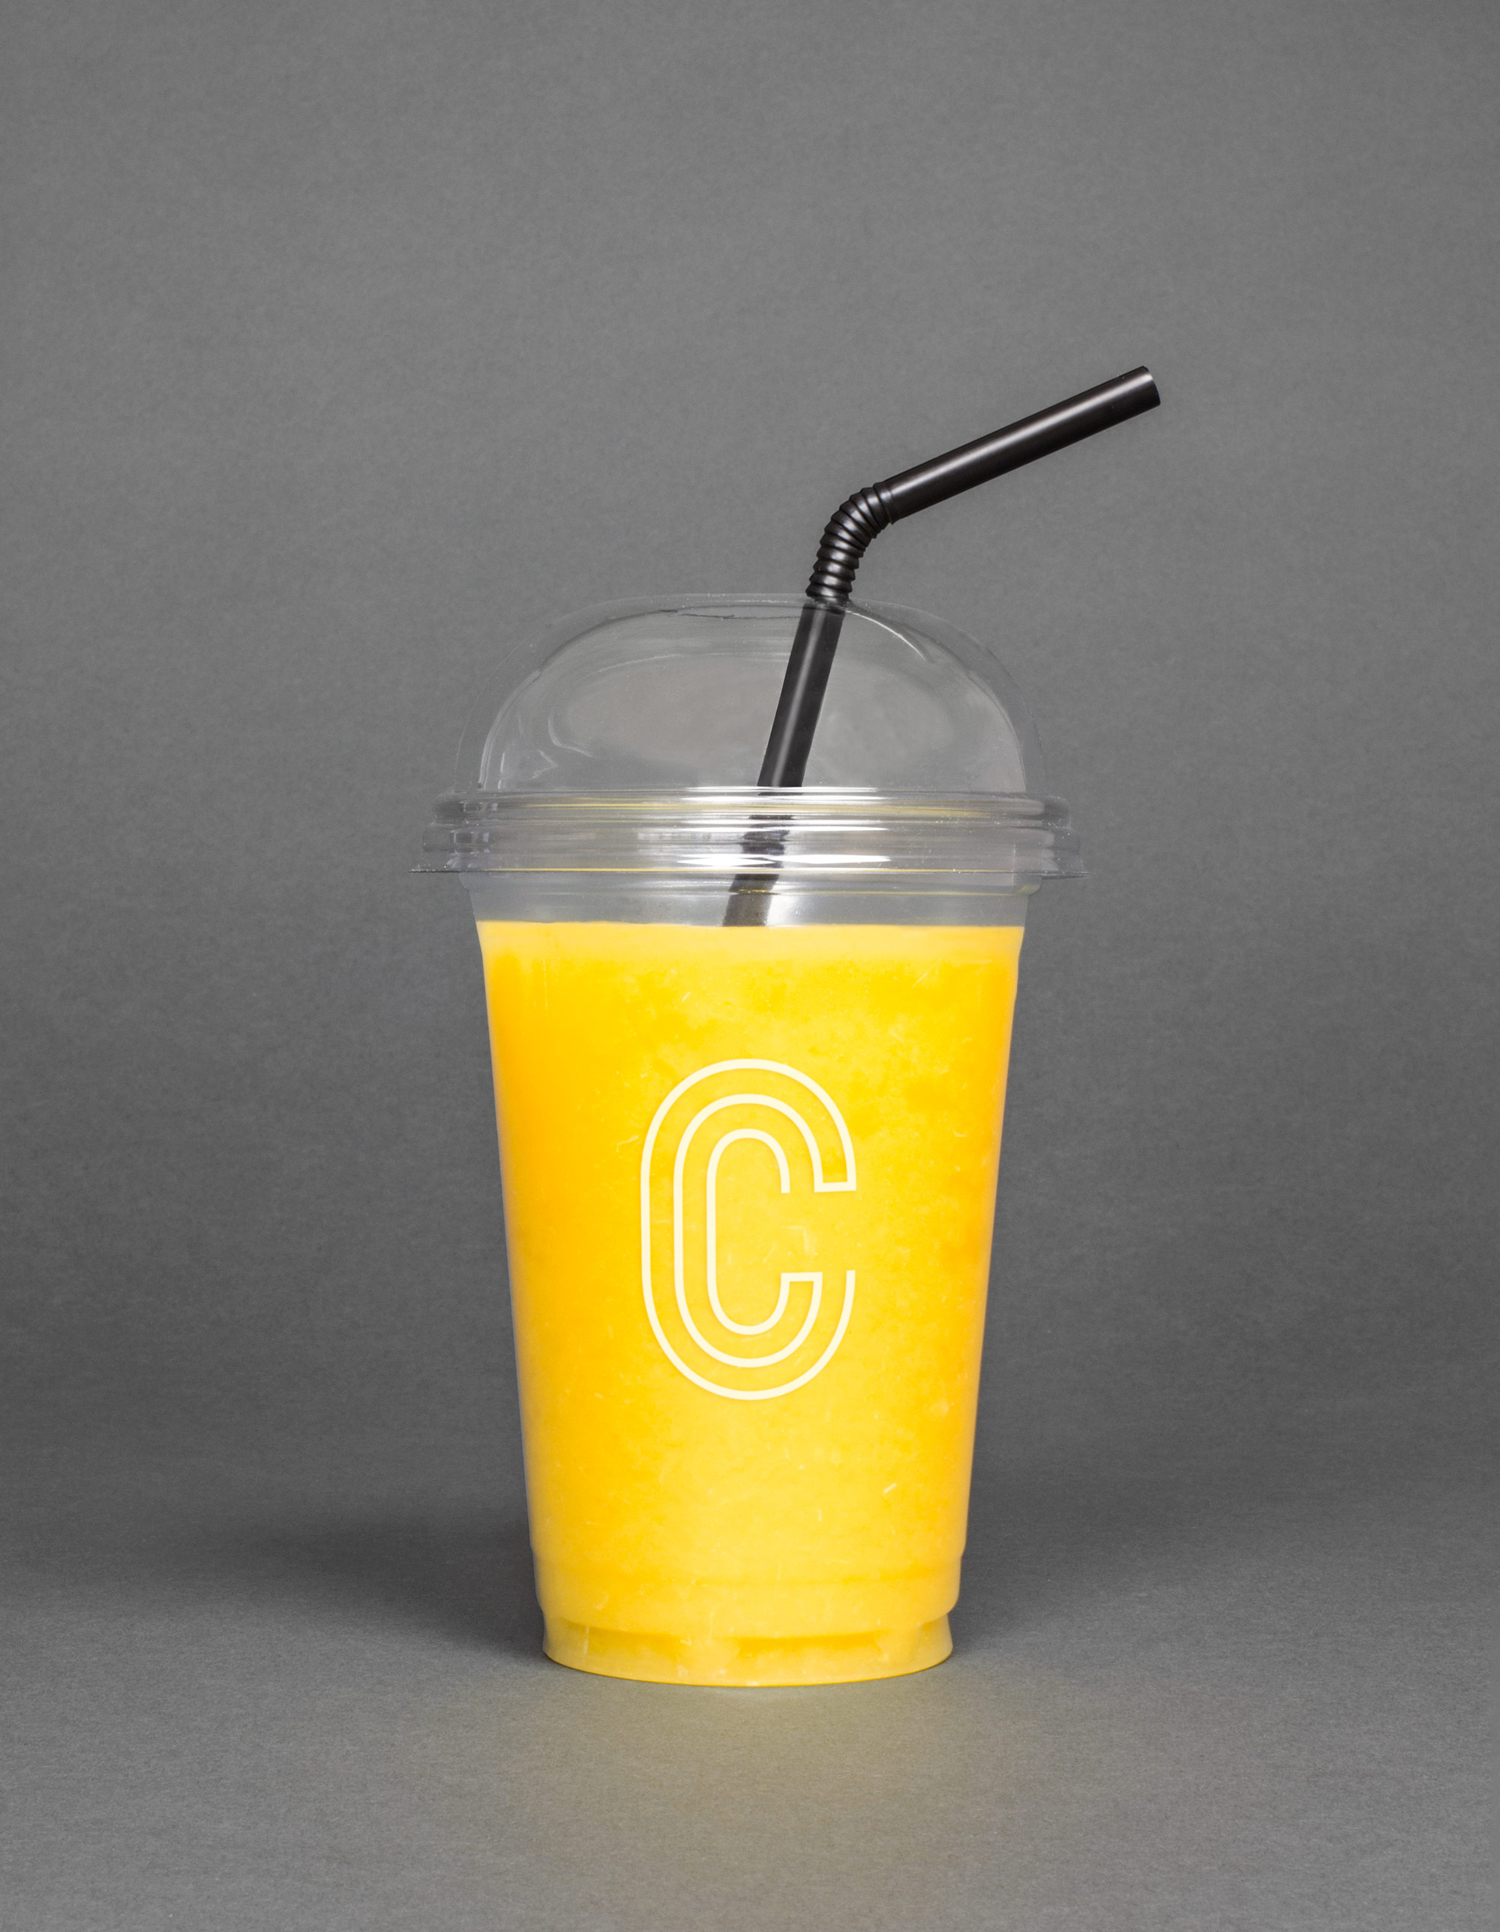 Logo and branded juice cup designed by 25ah for Stockholm cafe Caldo Coffee at the Scandic Continental